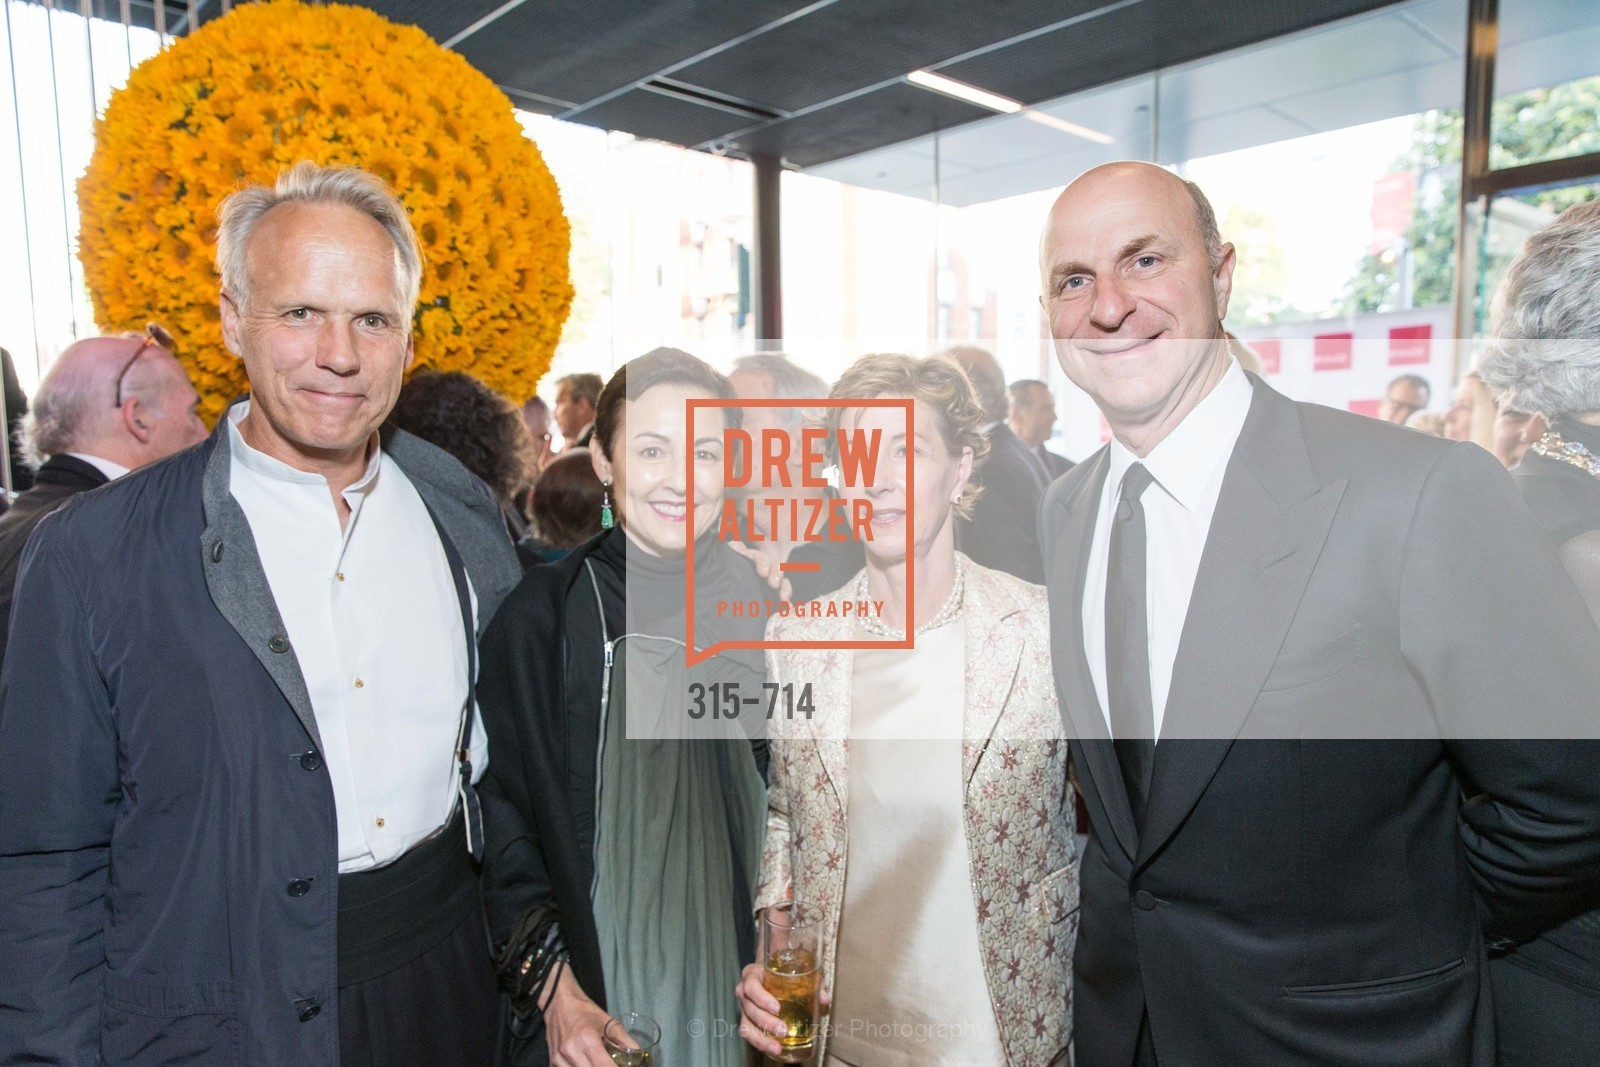 Steve Williamson, Sako Fisher, Alexandra Bowes, Bill Fisher, SFJAZZ Gala 2015 Honors Joni Mitchell with Lifetime Achievement Award, US, May 8th, 2015,Drew Altizer, Drew Altizer Photography, full-service agency, private events, San Francisco photographer, photographer california